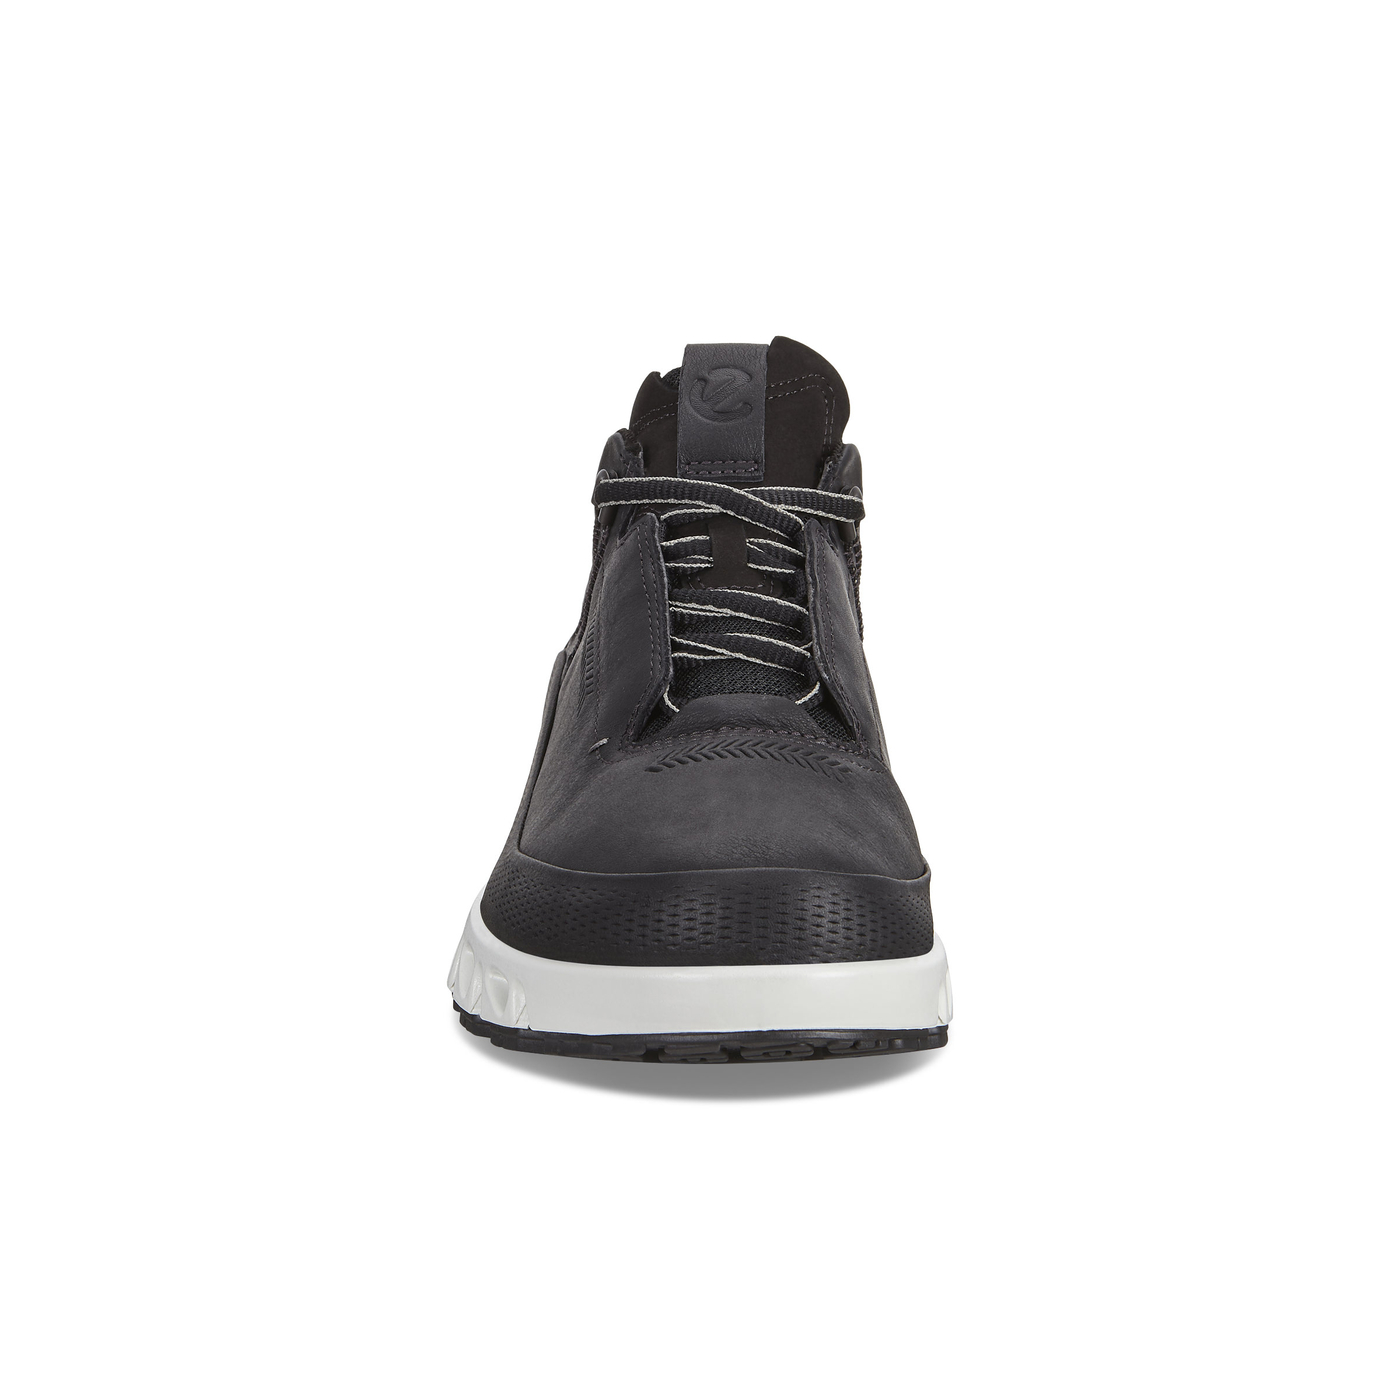 ECCO OMNI-VENT Mens Leather Sneaker